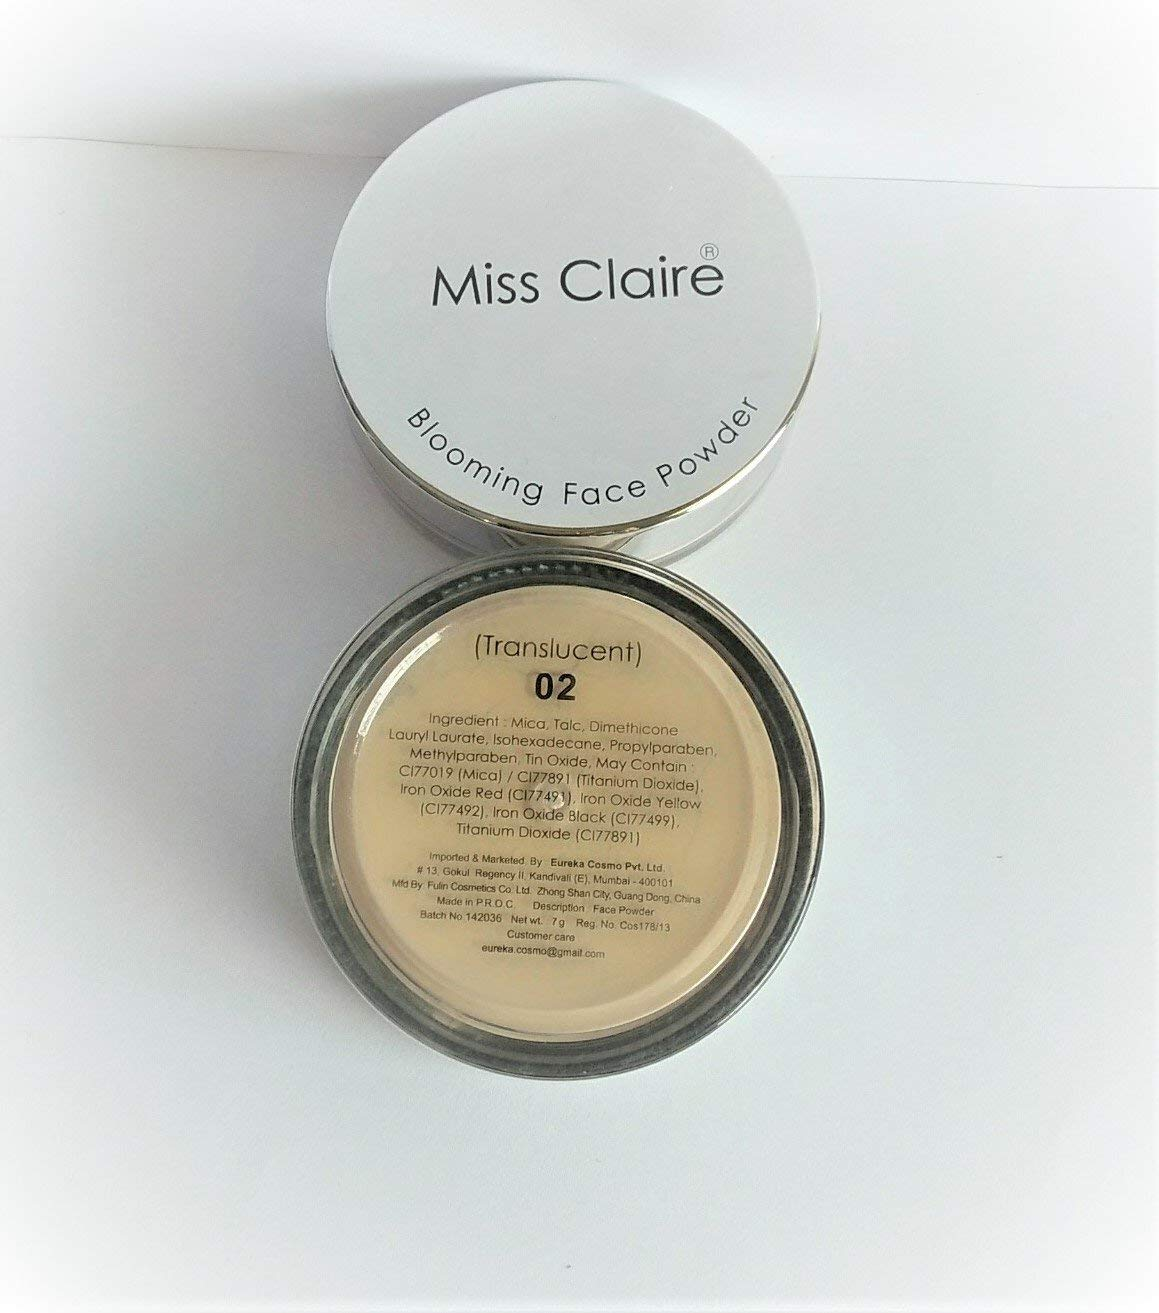 Miss High material Claire Face Powder Popular products Transcluscent 02 -